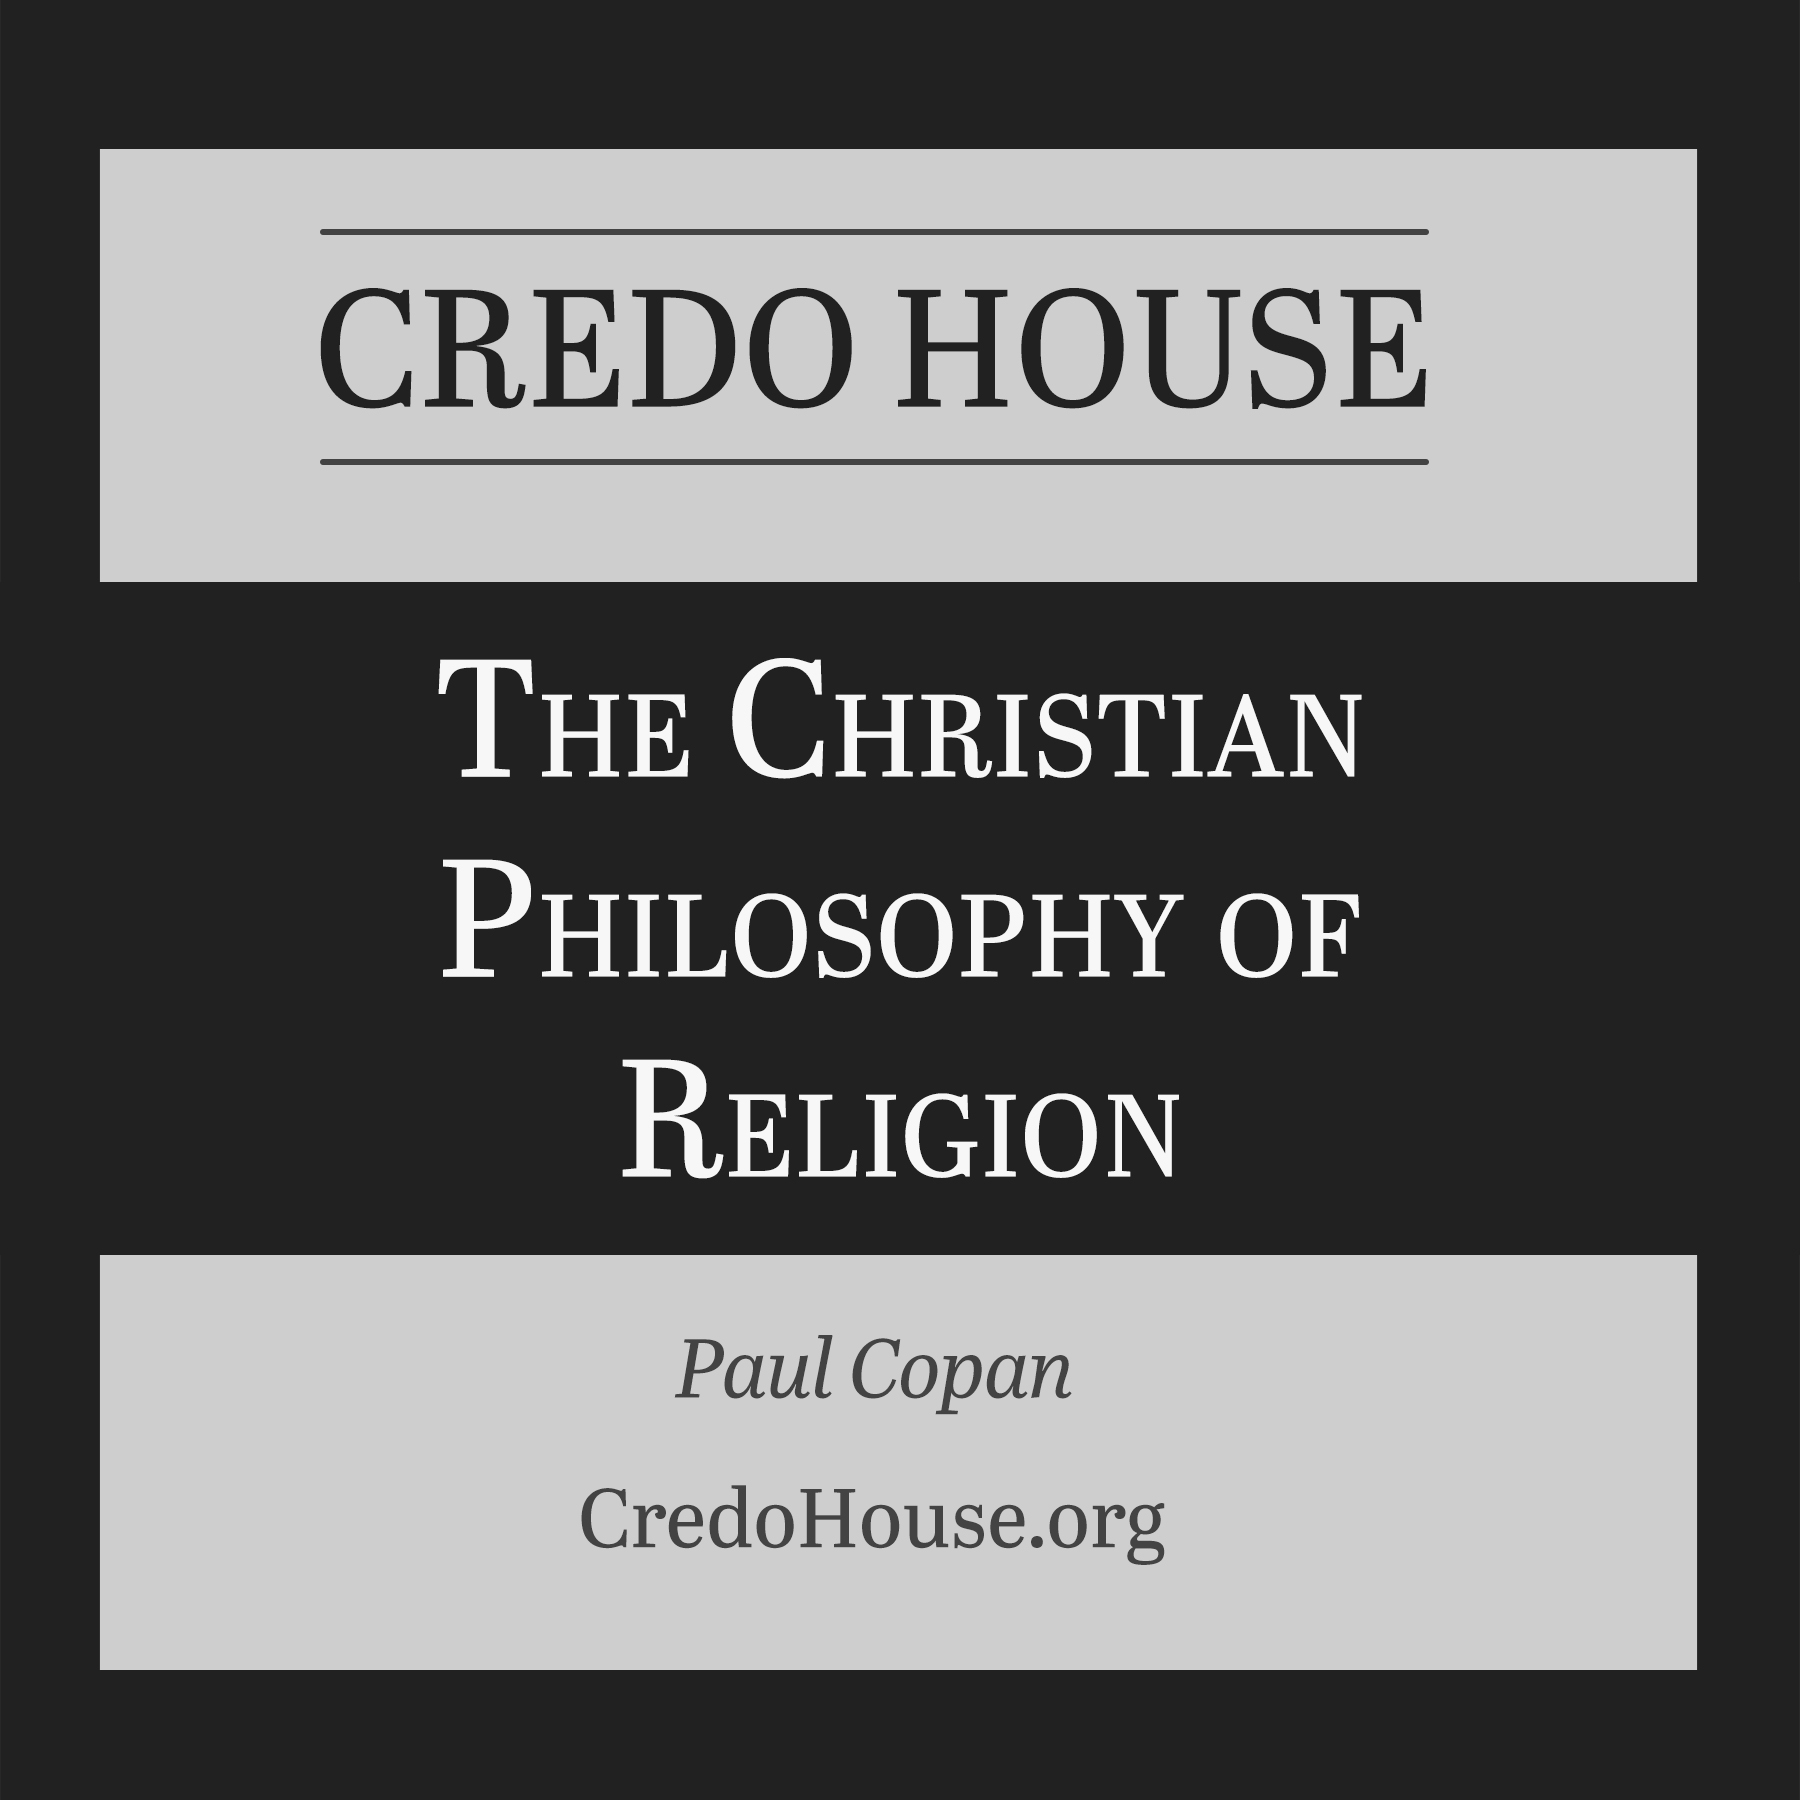 philosophy religion christianity protestant denominations presbytery